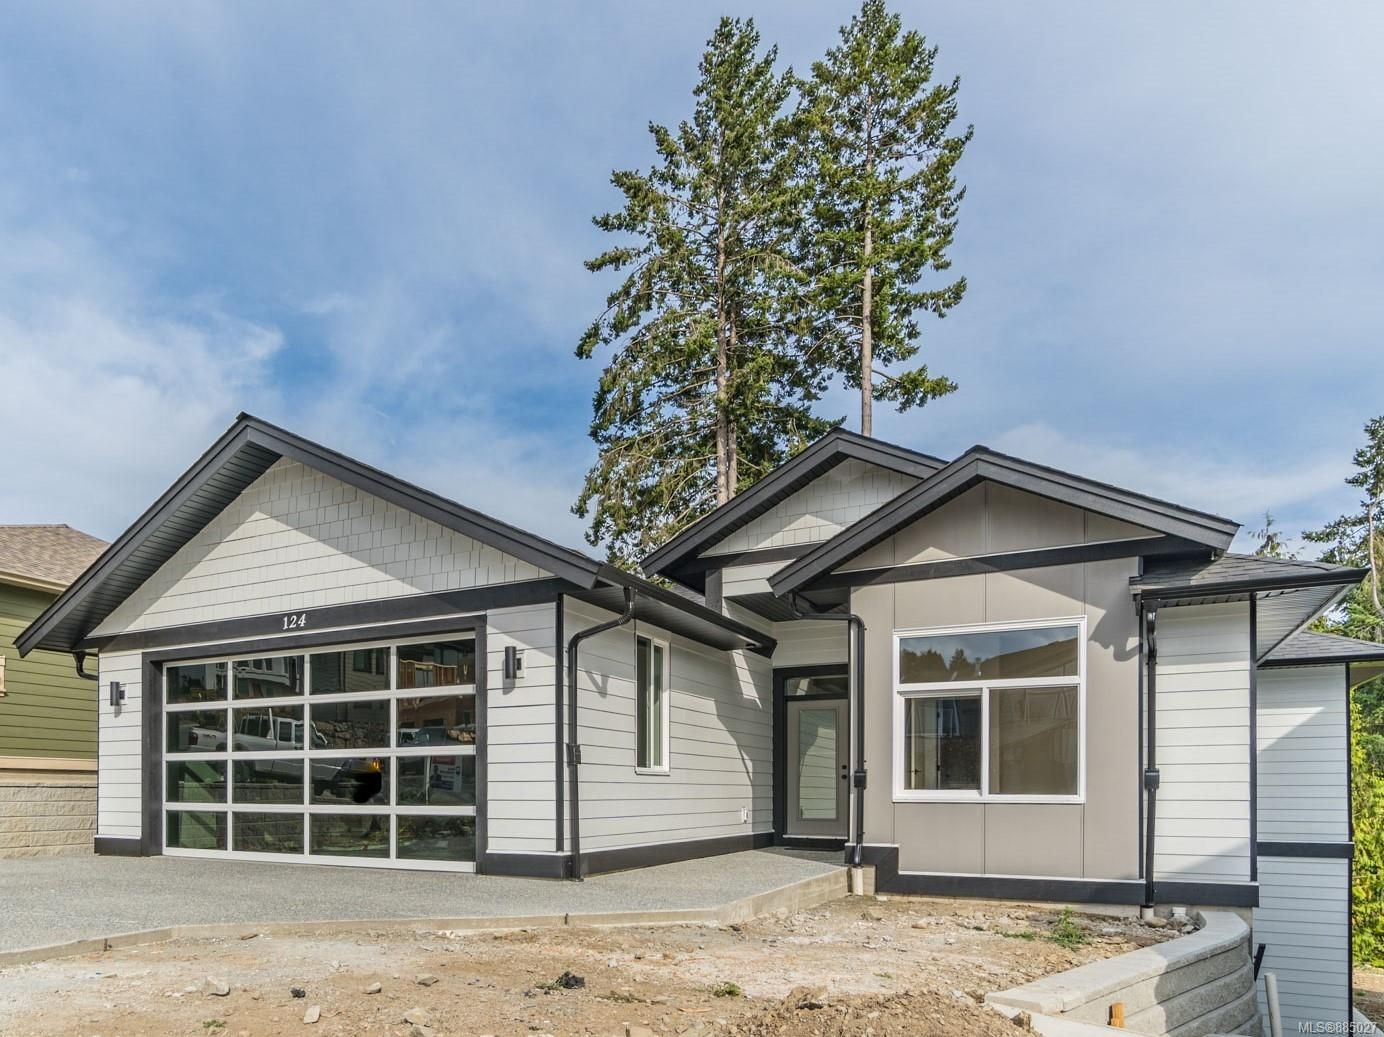 Main Photo: 124 Golden Oaks Cres in : Na Hammond Bay House for sale (Nanaimo)  : MLS®# 885027